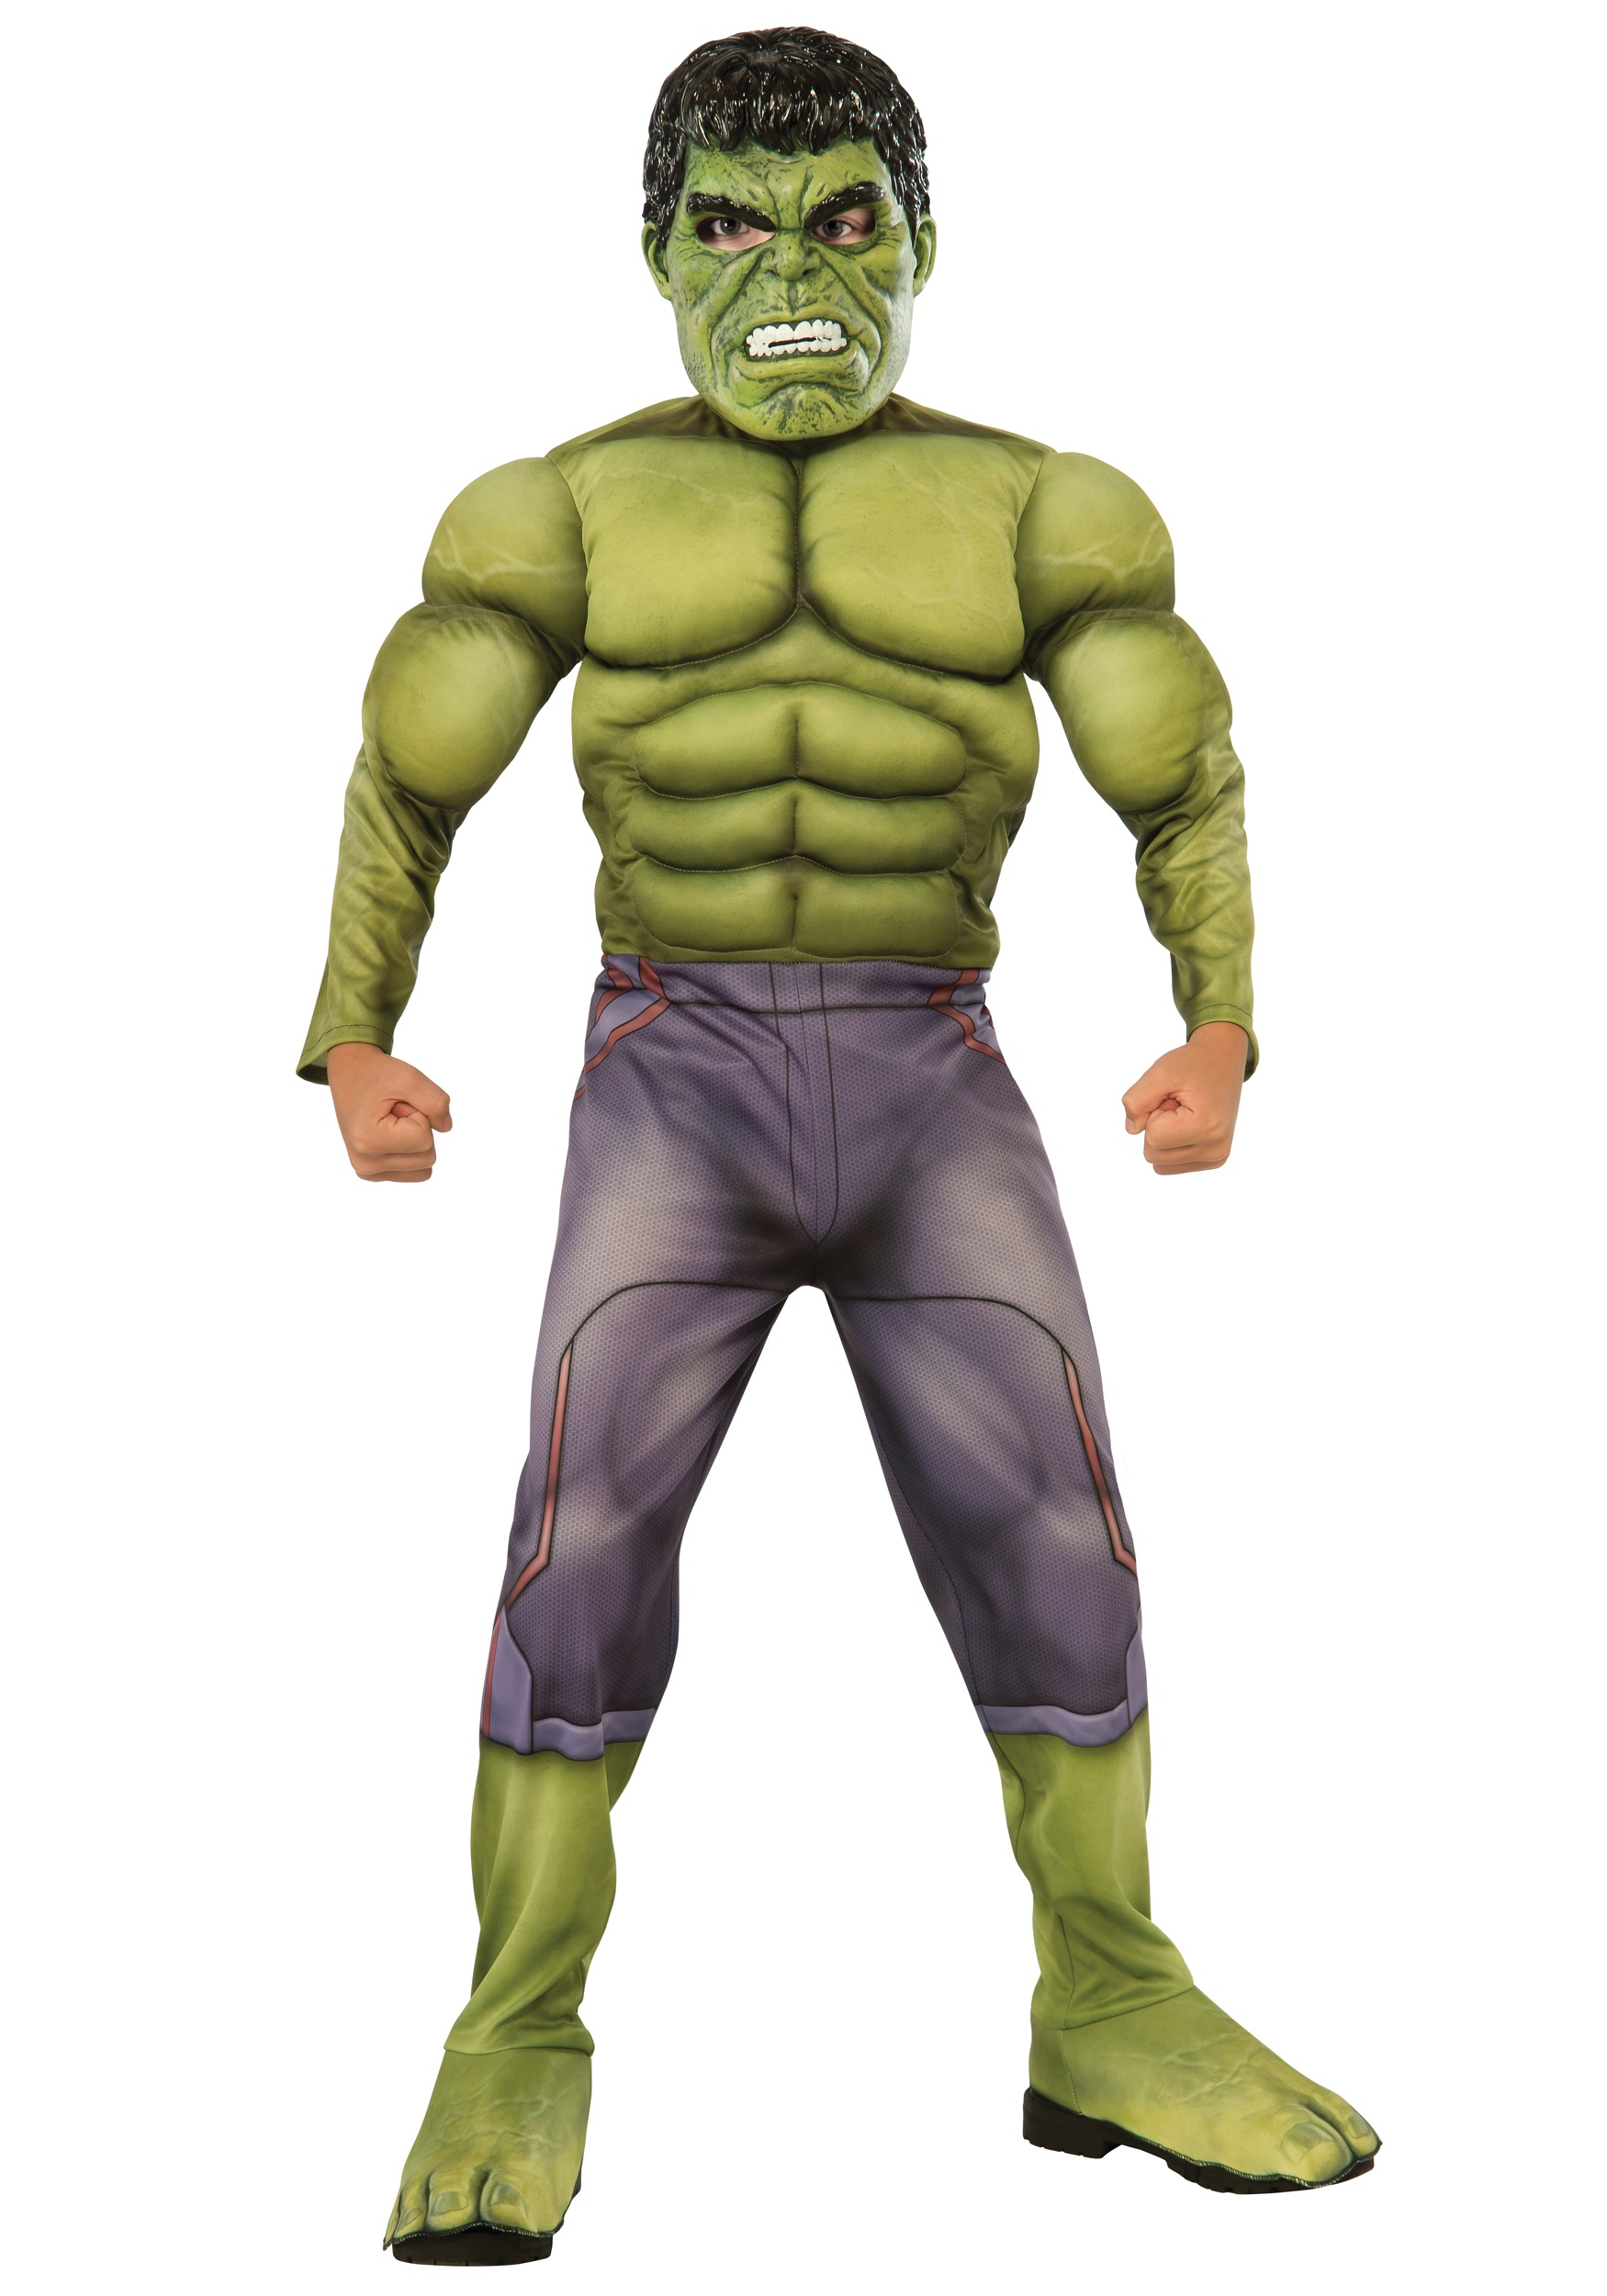 Child Deluxe Hulk Avengers 2 Costume RU610429